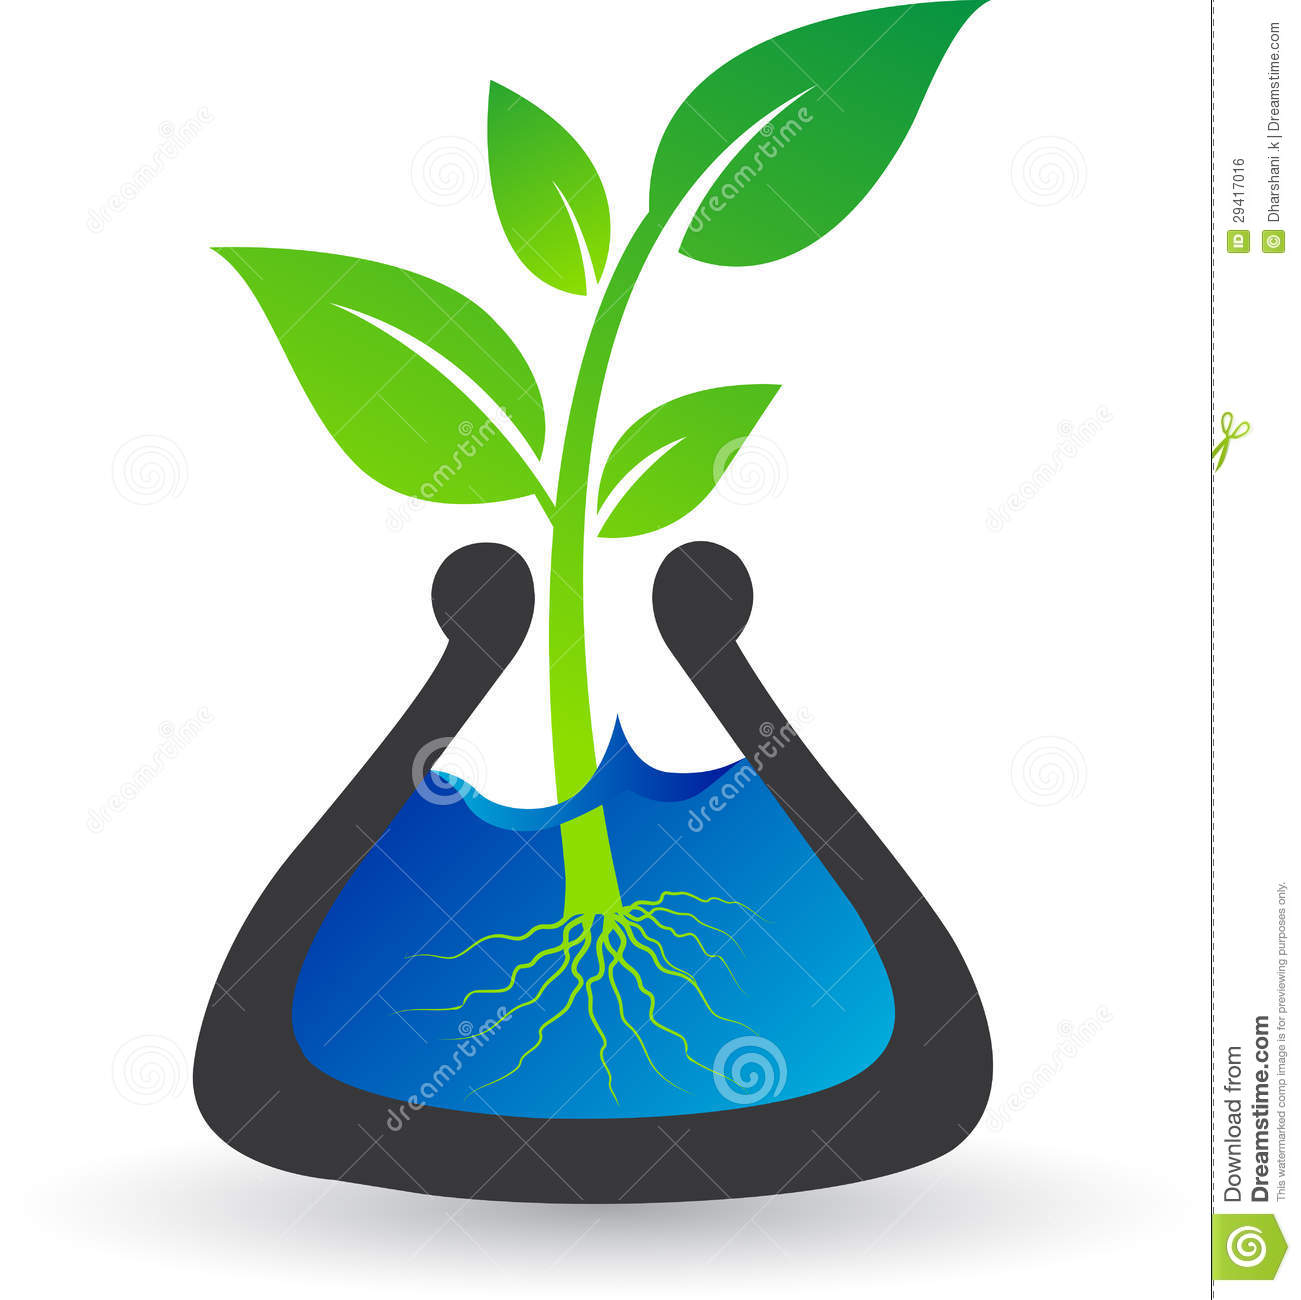 Test Tube Plant Royalty Free Stock Image Image 29417016